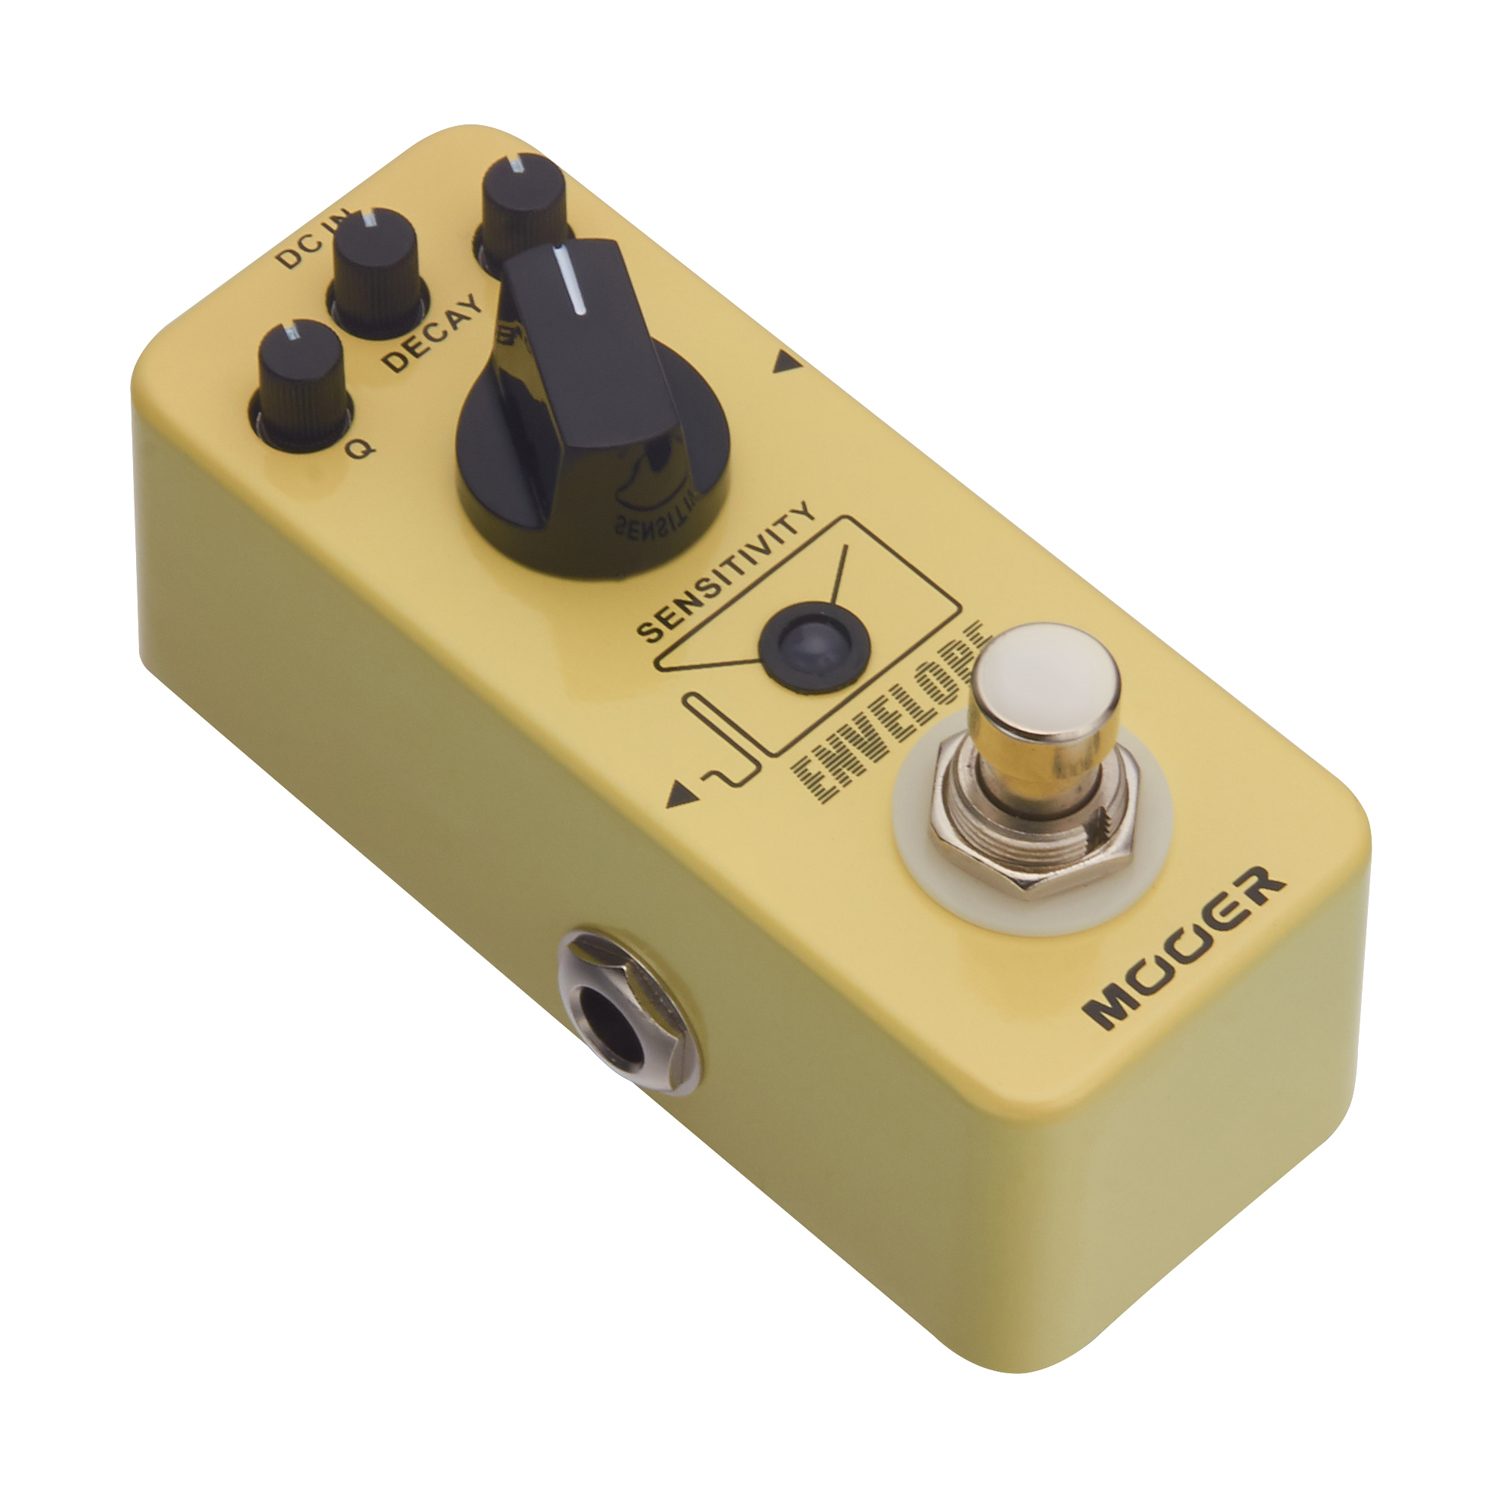 Mooer Envelope Analog Filter Auto Wah Guitar Effect Pedal Q Decay Tone Control MFT4 new effect pedal mooer envelope auto wah filter dynamic auto wah pedal with big tone and lots of versatility